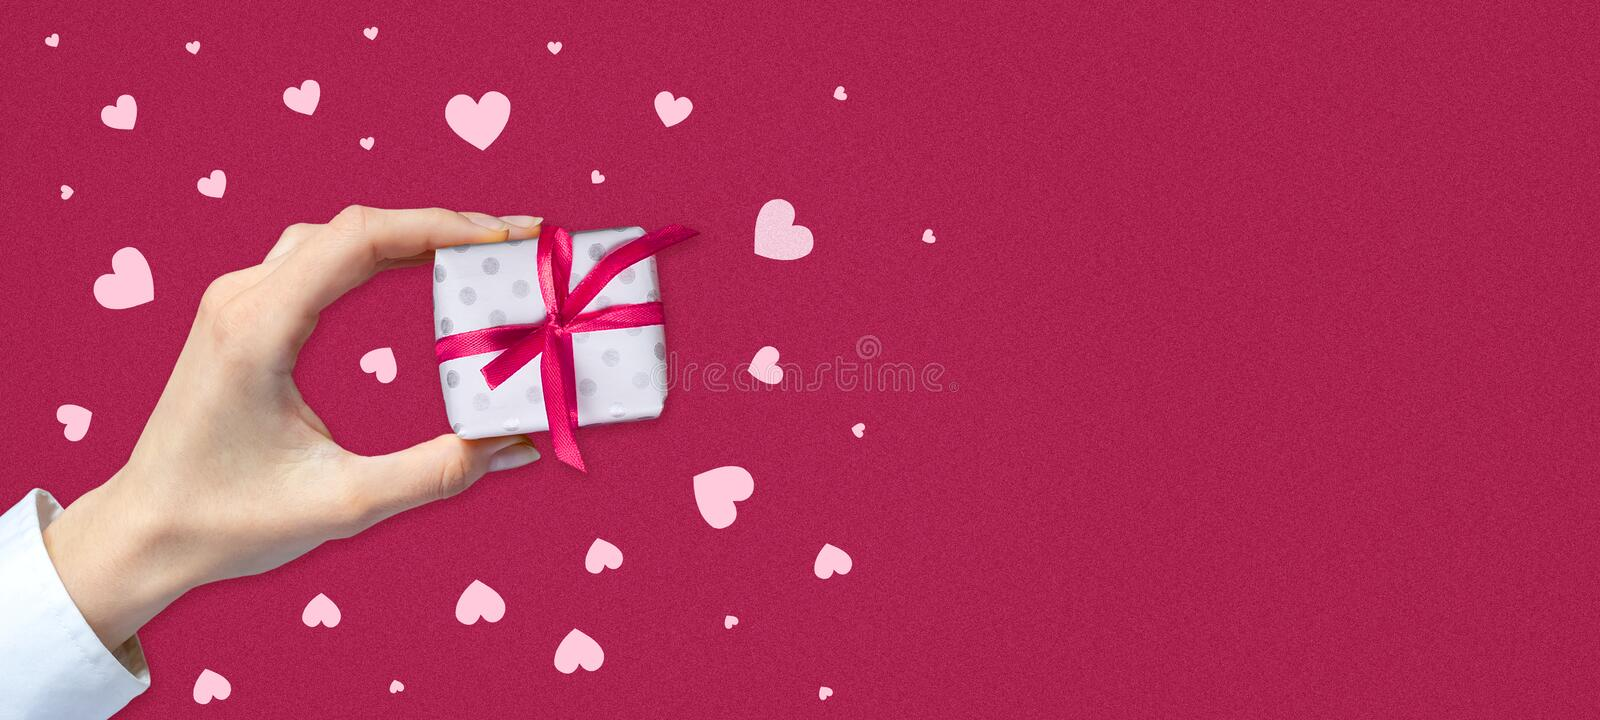 Female hand with a gift on a pink background with hearts. Copy space. Place for text. Mothers Day. St. Valentine`s Day. Birthday. Greeting card. Festive banner royalty free stock photos